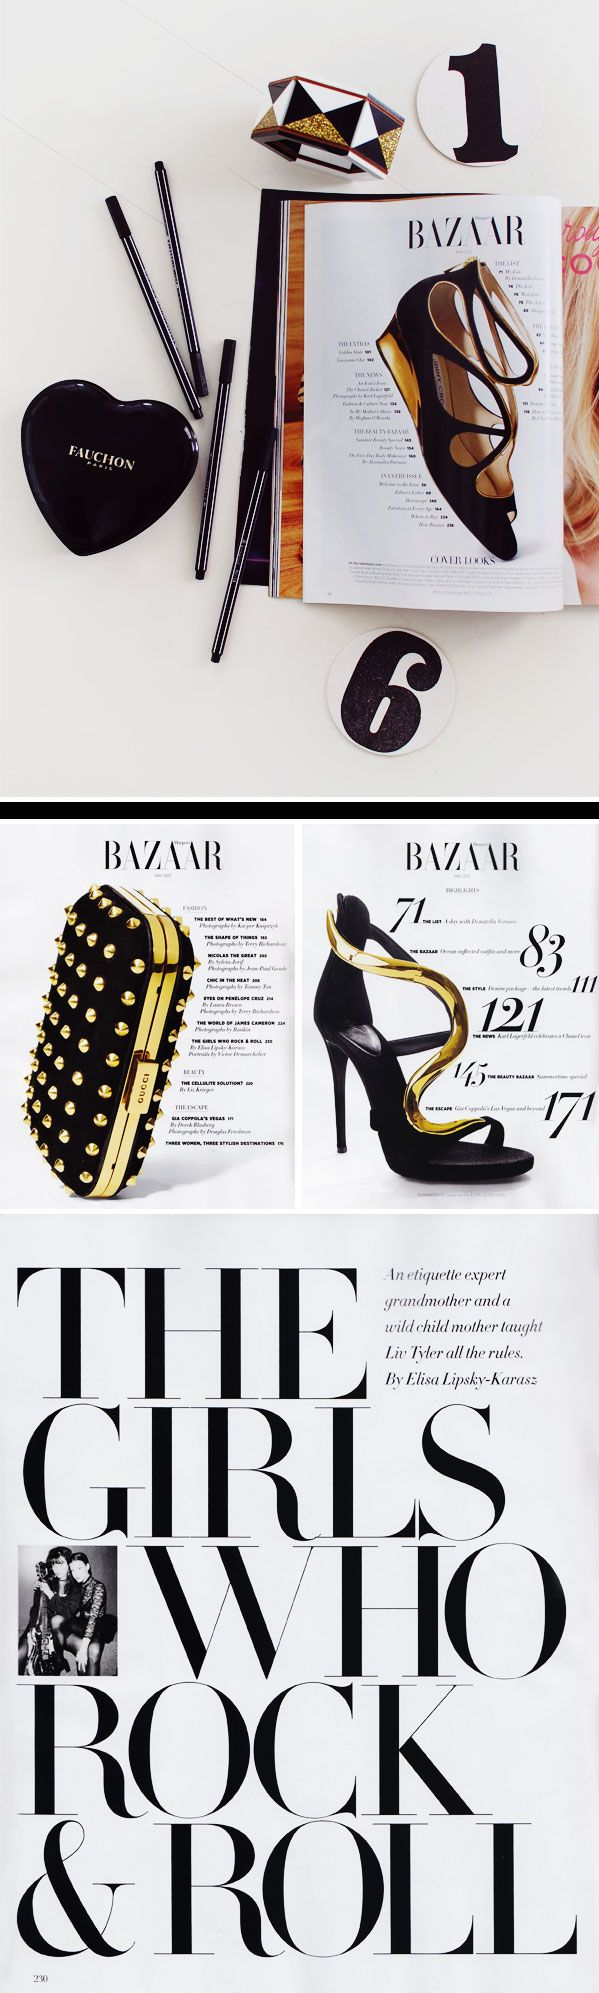 Harper's Bazaar, May 2012 Didot and Bodoni dominated printing until the late nineteenth century, when the Arts and Crafts movement returned to the solidity of humanist letterforms and the texture of Renaissance printing (William Morris called Bodoni's letterforms 'shatteringly hideous').